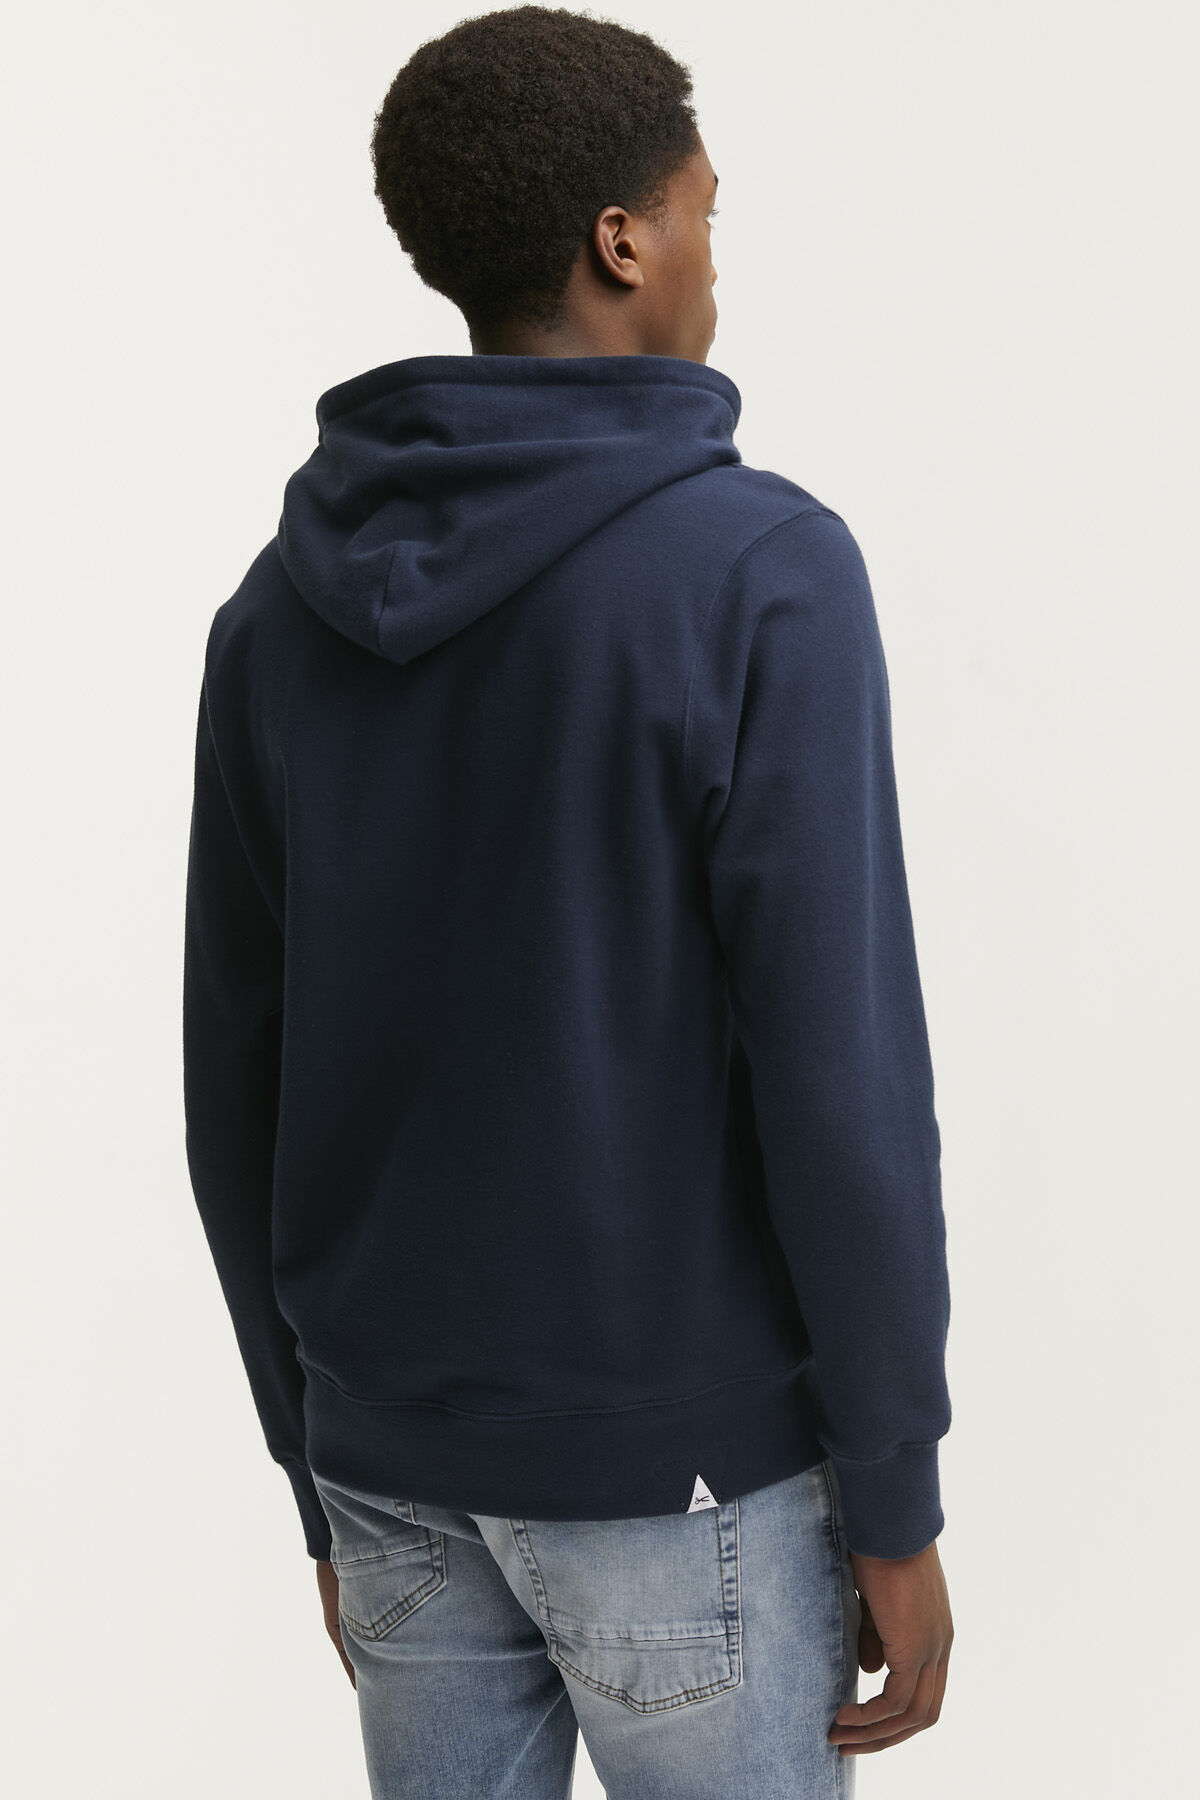 DENHAM INDIGO MONSTER HOODY Soft Cotton Fleece - Regular Fit